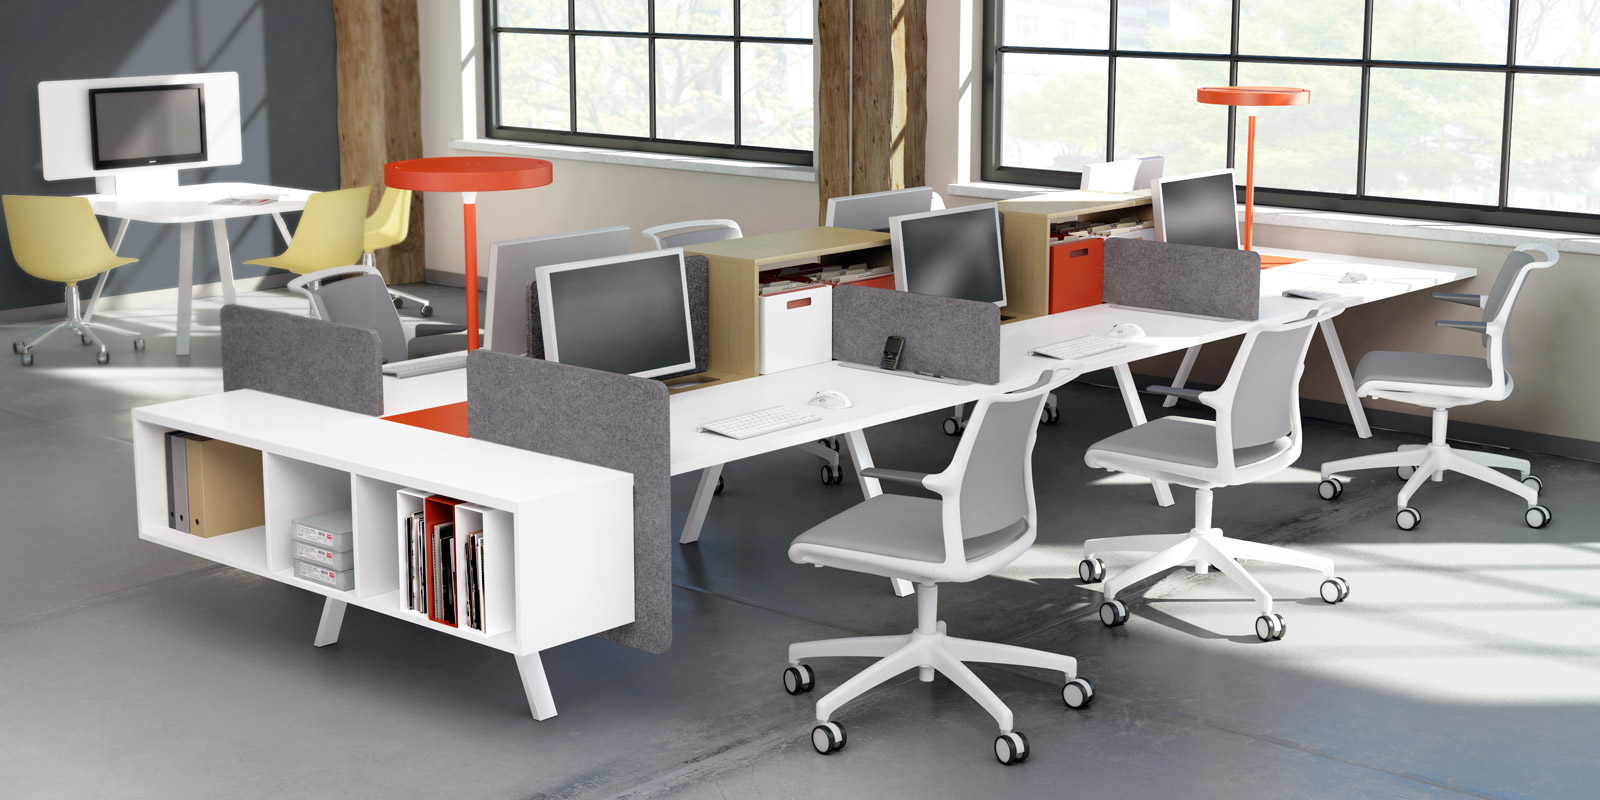 office furniture - save up to 70%.